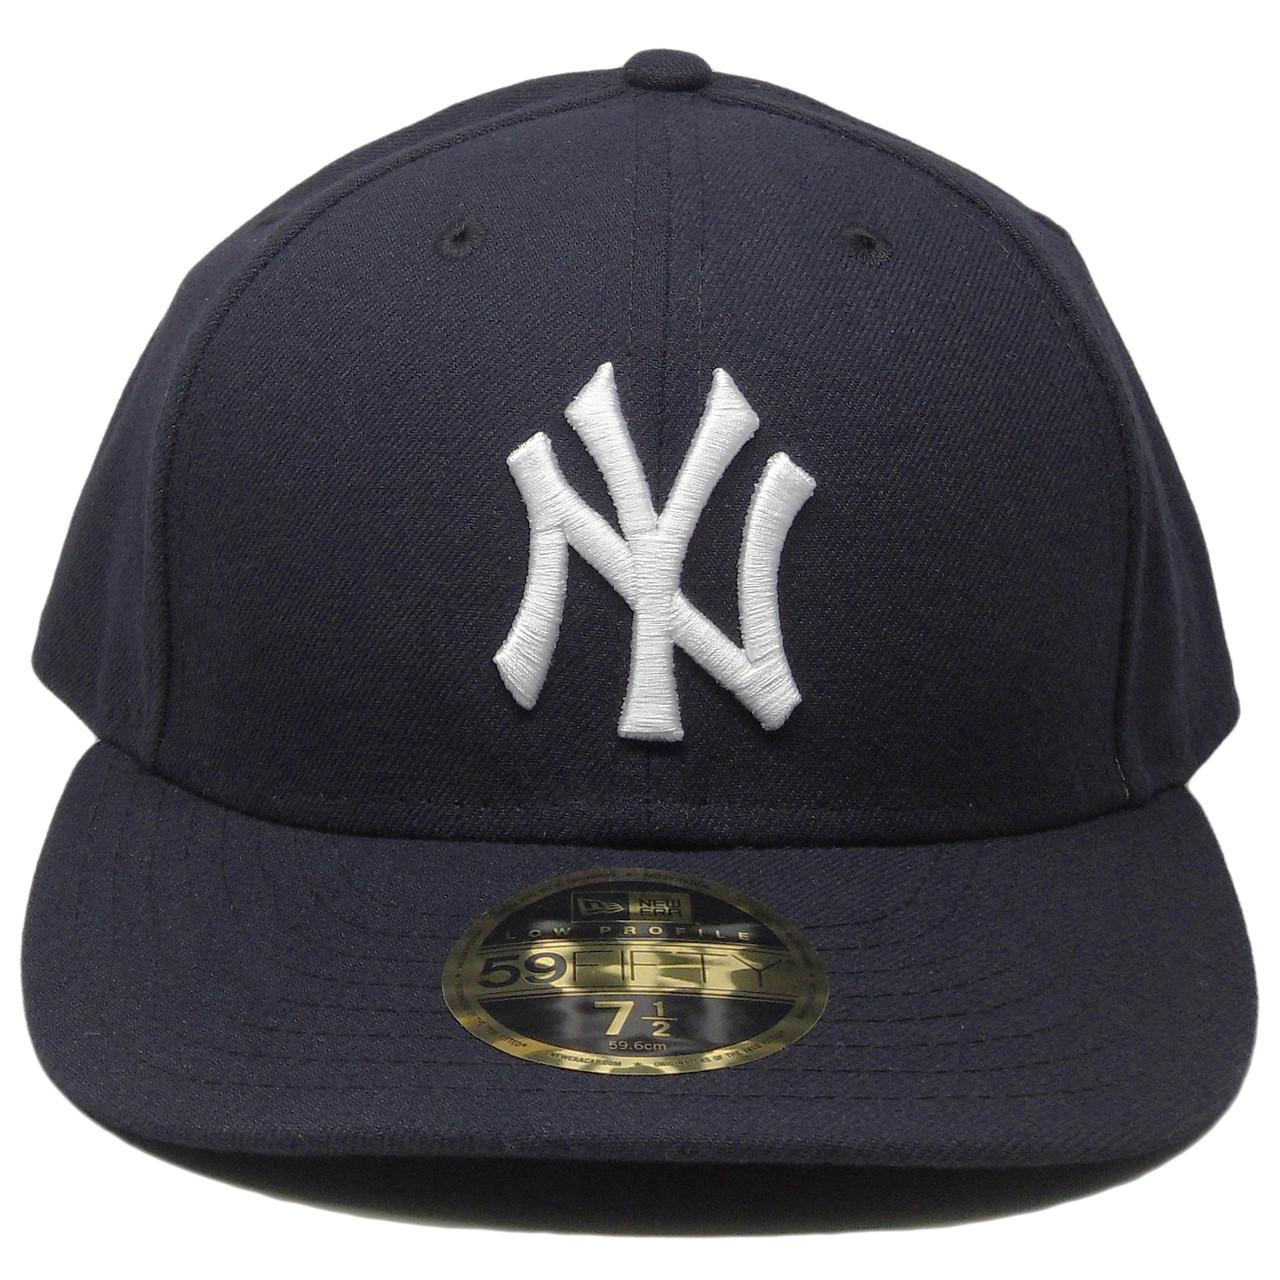 New York Yankees New Era 59Fifty Low Profile Fitted Hat - Navy ... 71c2d0a2fea